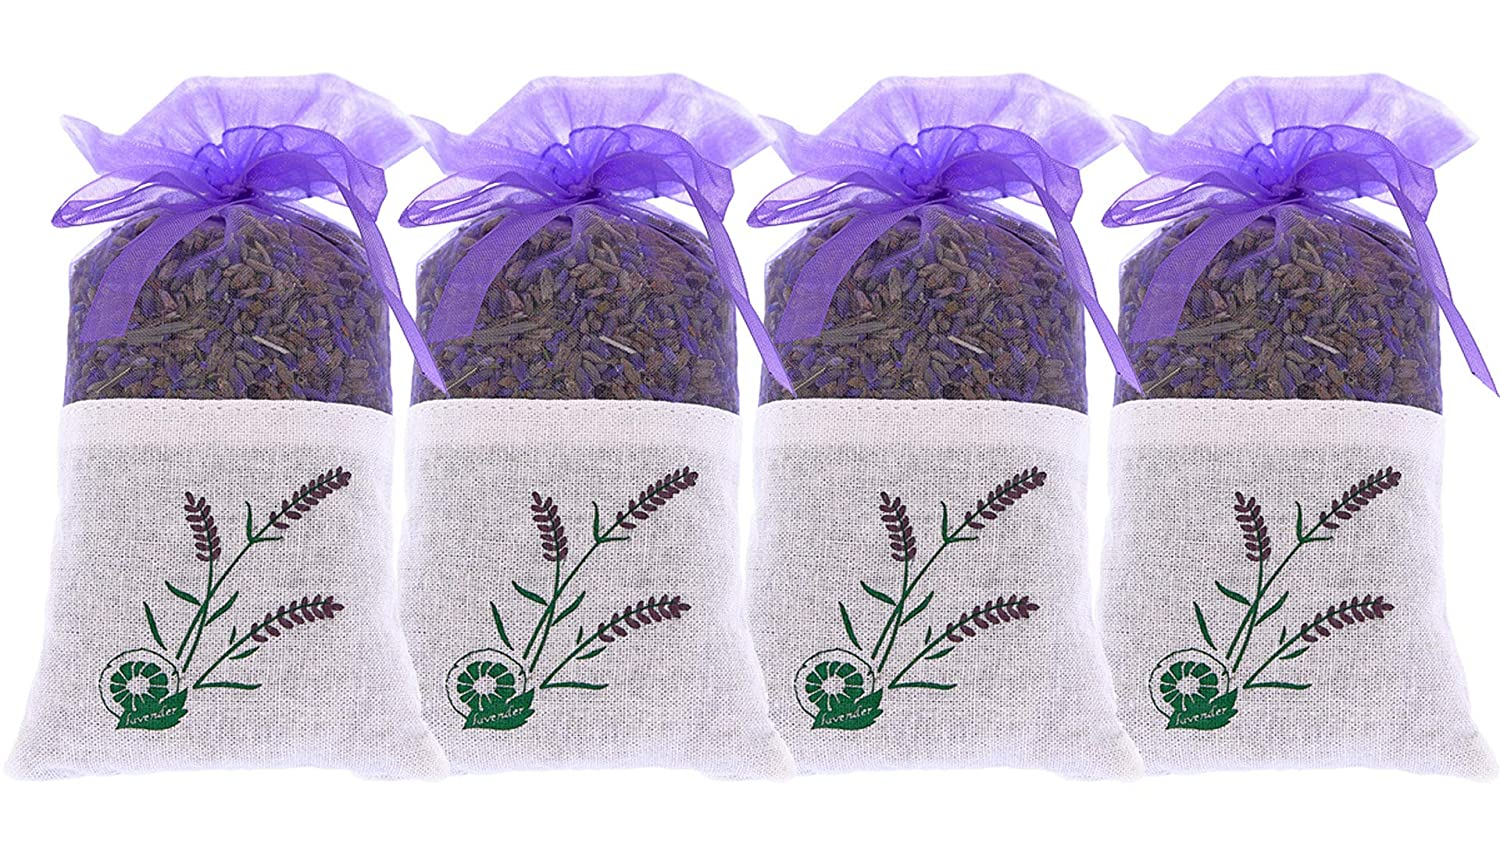 Pure Lavender Scent - 4 Sachet of 20 grams 100% Pure Dried Lavender Buds - Fragrance for Aromatherapy - Car - Closet - Drawers - Moths - Wardrobe The Lavender Collection